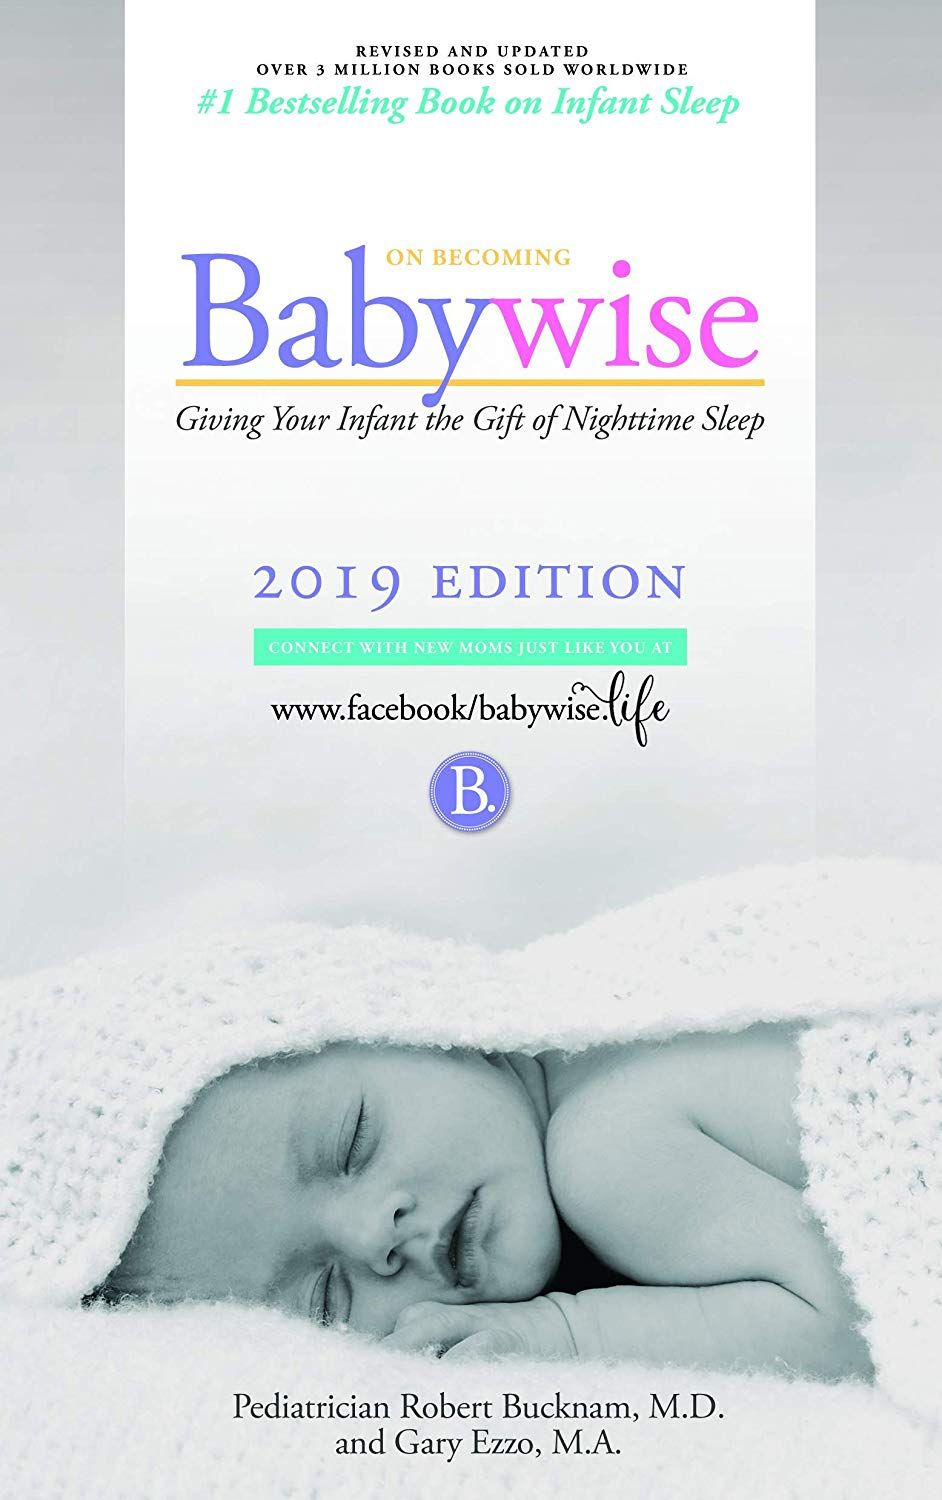 Amazon Com On Becoming Babywise Giving Your Infant The Gift Of Nighttime Sleep Interactive Support On Becoming In 2020 On Becoming Babywise Baby Wise Free Reading